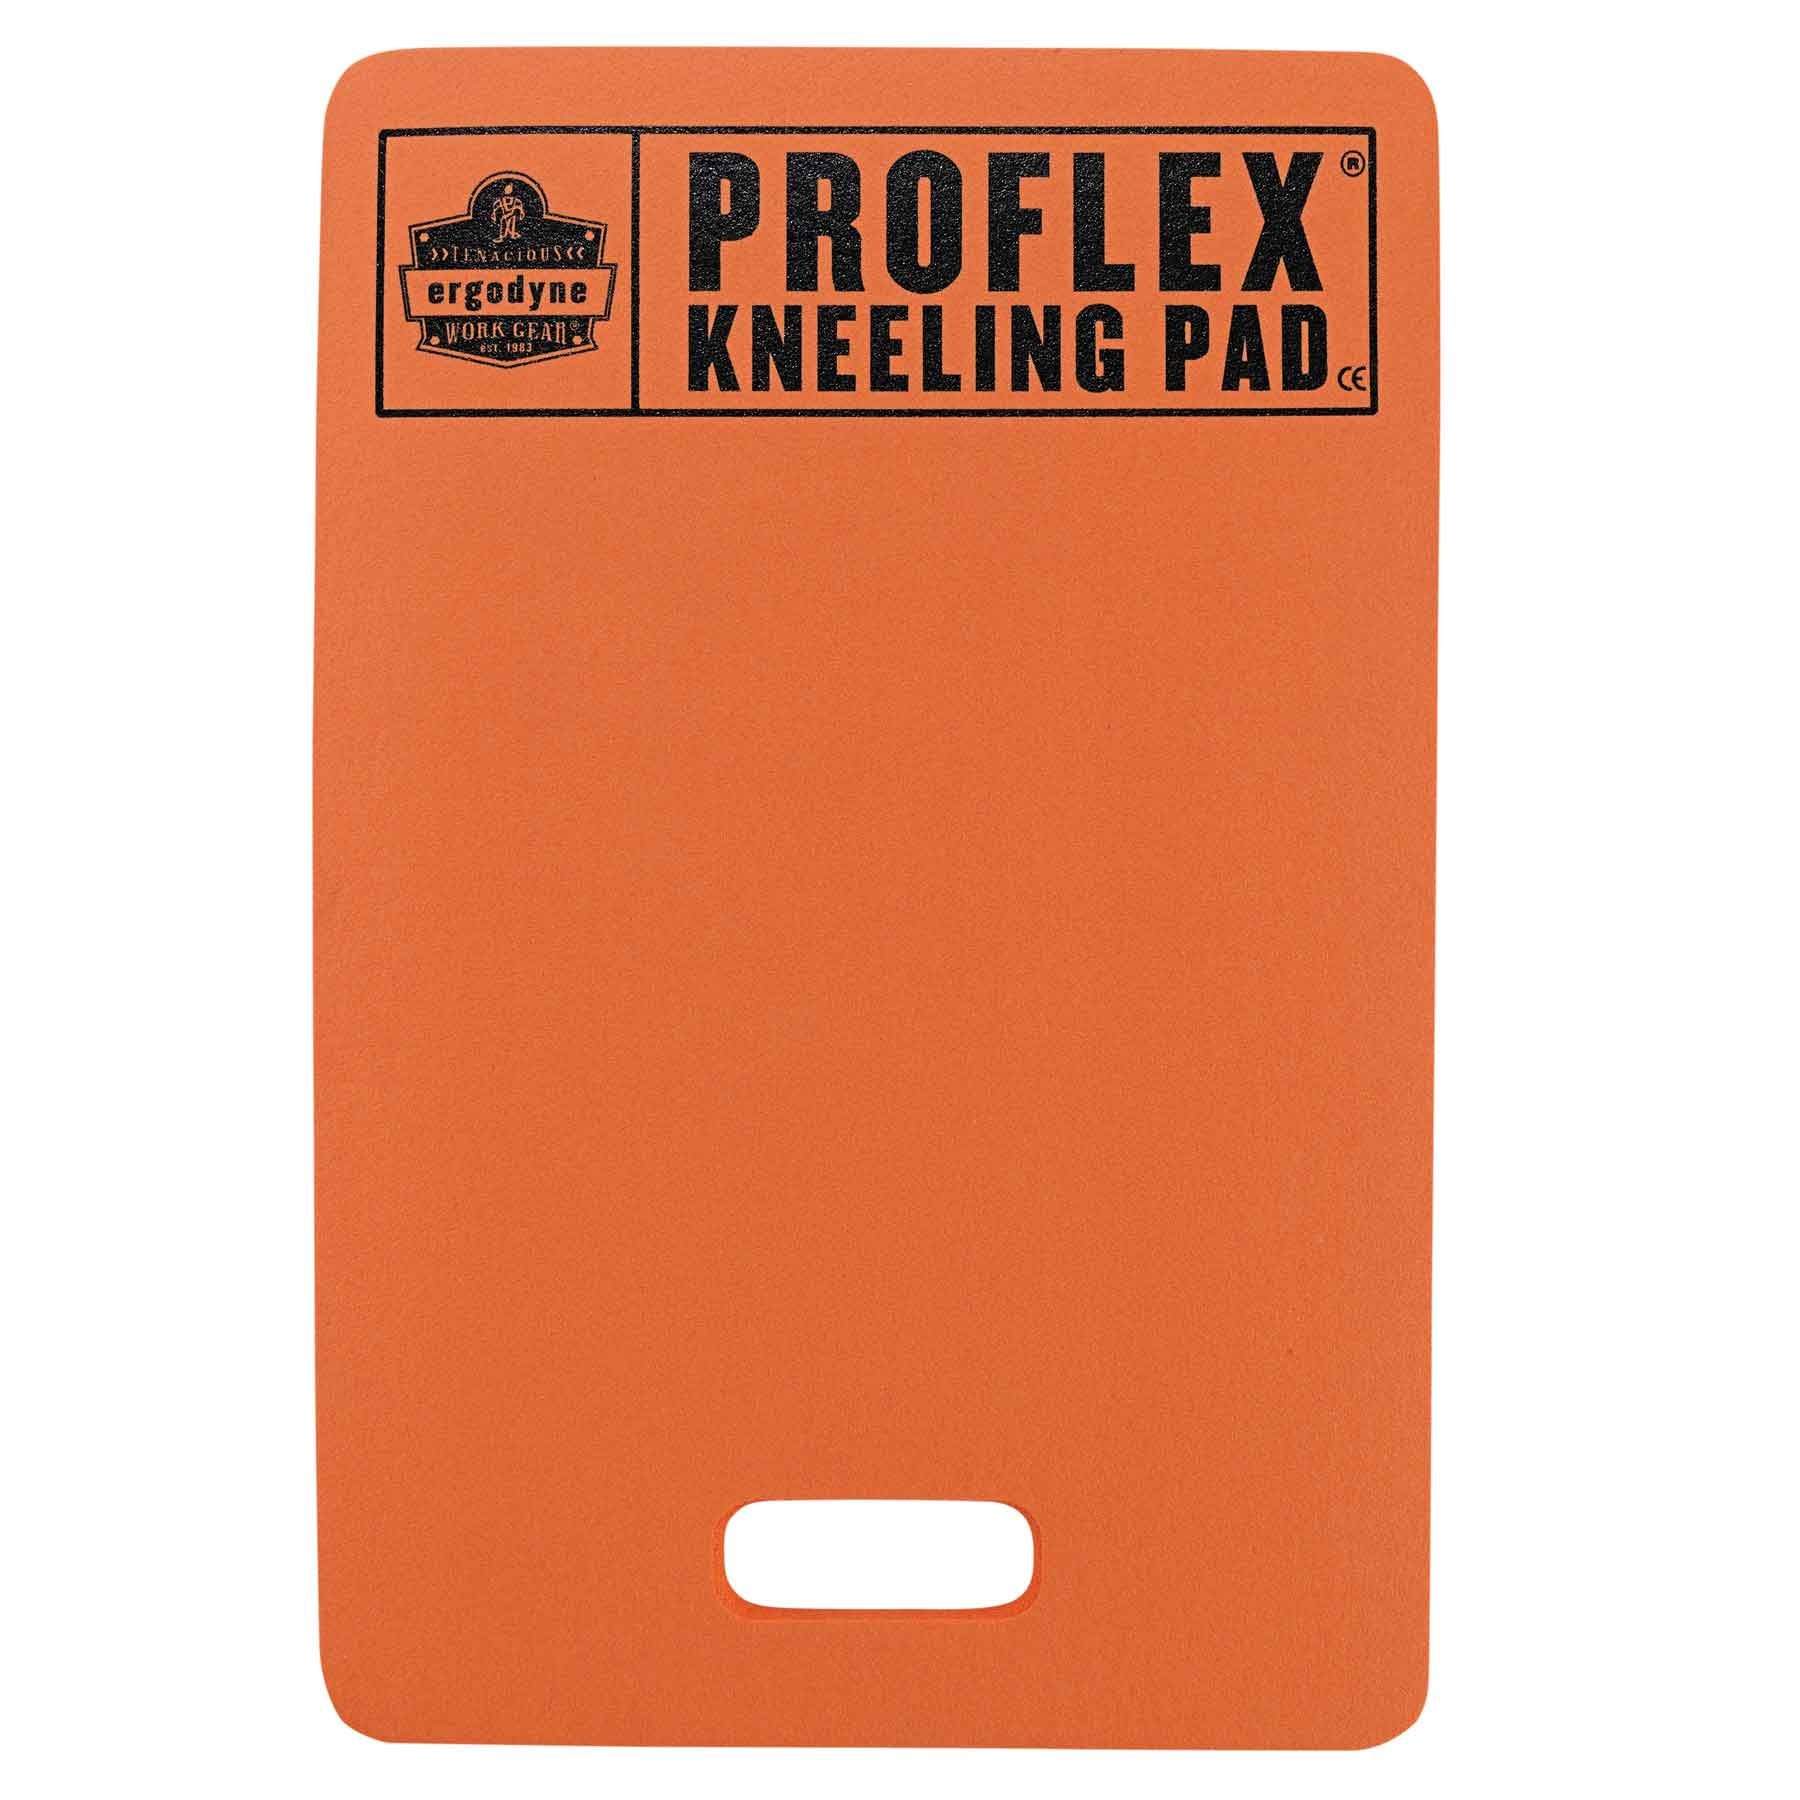 Ergodyne ProFlex 380 Multi-Functional Foam Kneeling Pad, Cushions and Protects for Static Kneeling, Orange, 14'' x 21'' x 1 by Ergodyne